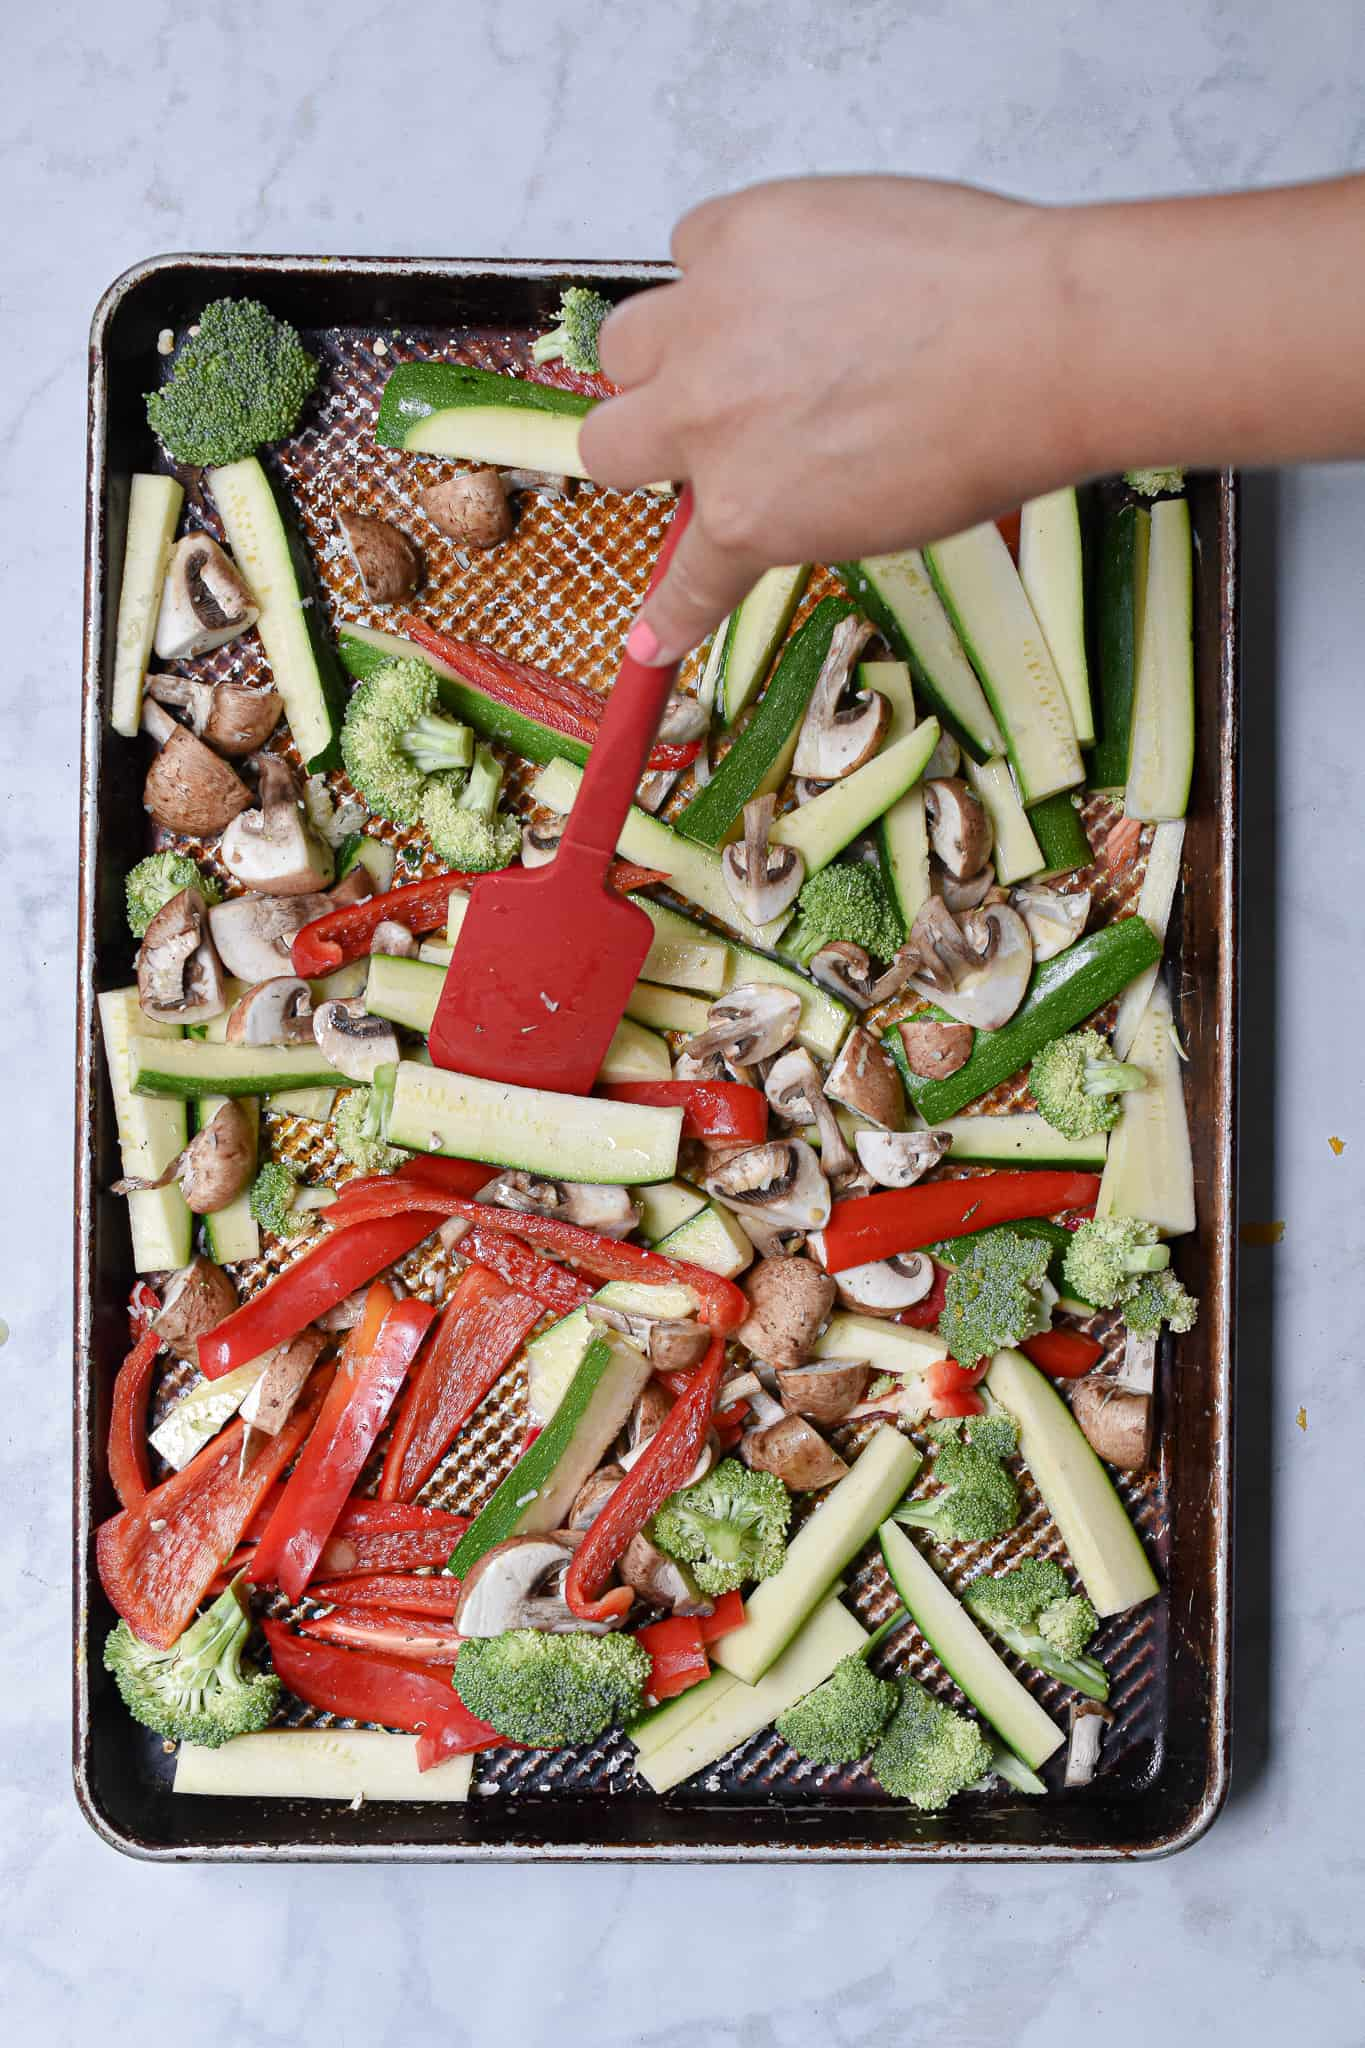 Mix the vegetables to combine the ingredients